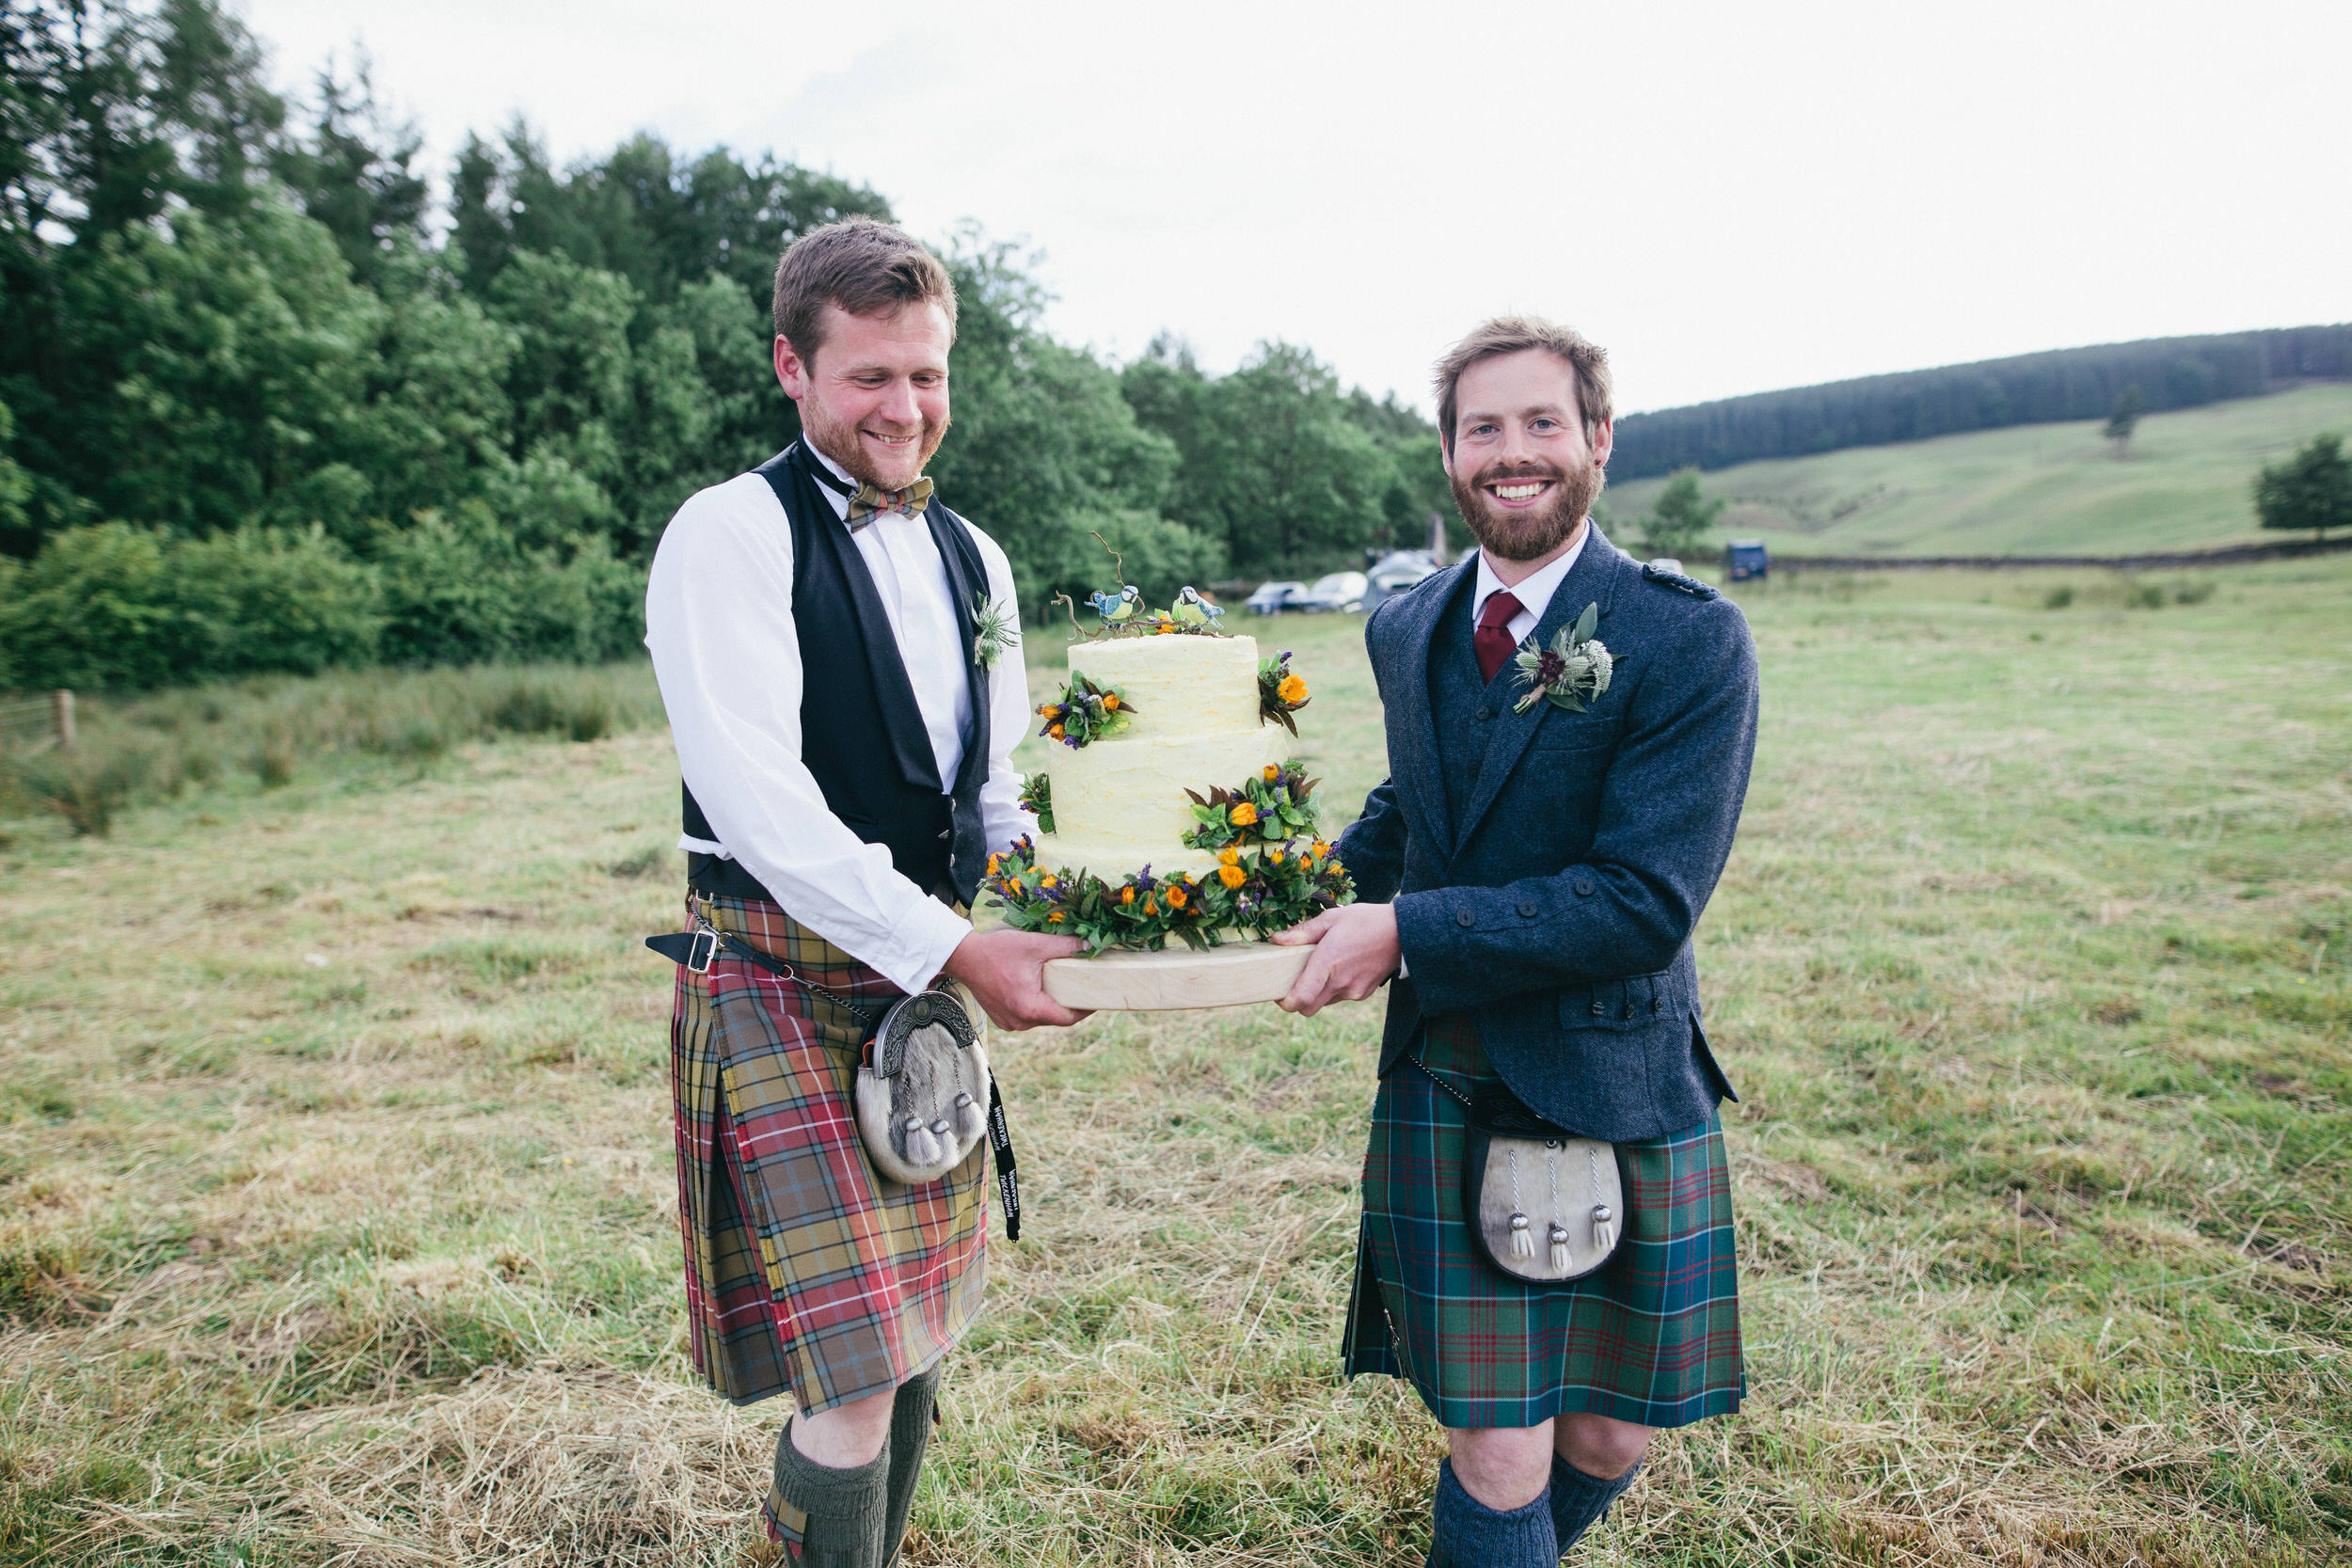 Alternative Quirky Wedding Photographer Scotland Borders Edinburgh 093.jpg